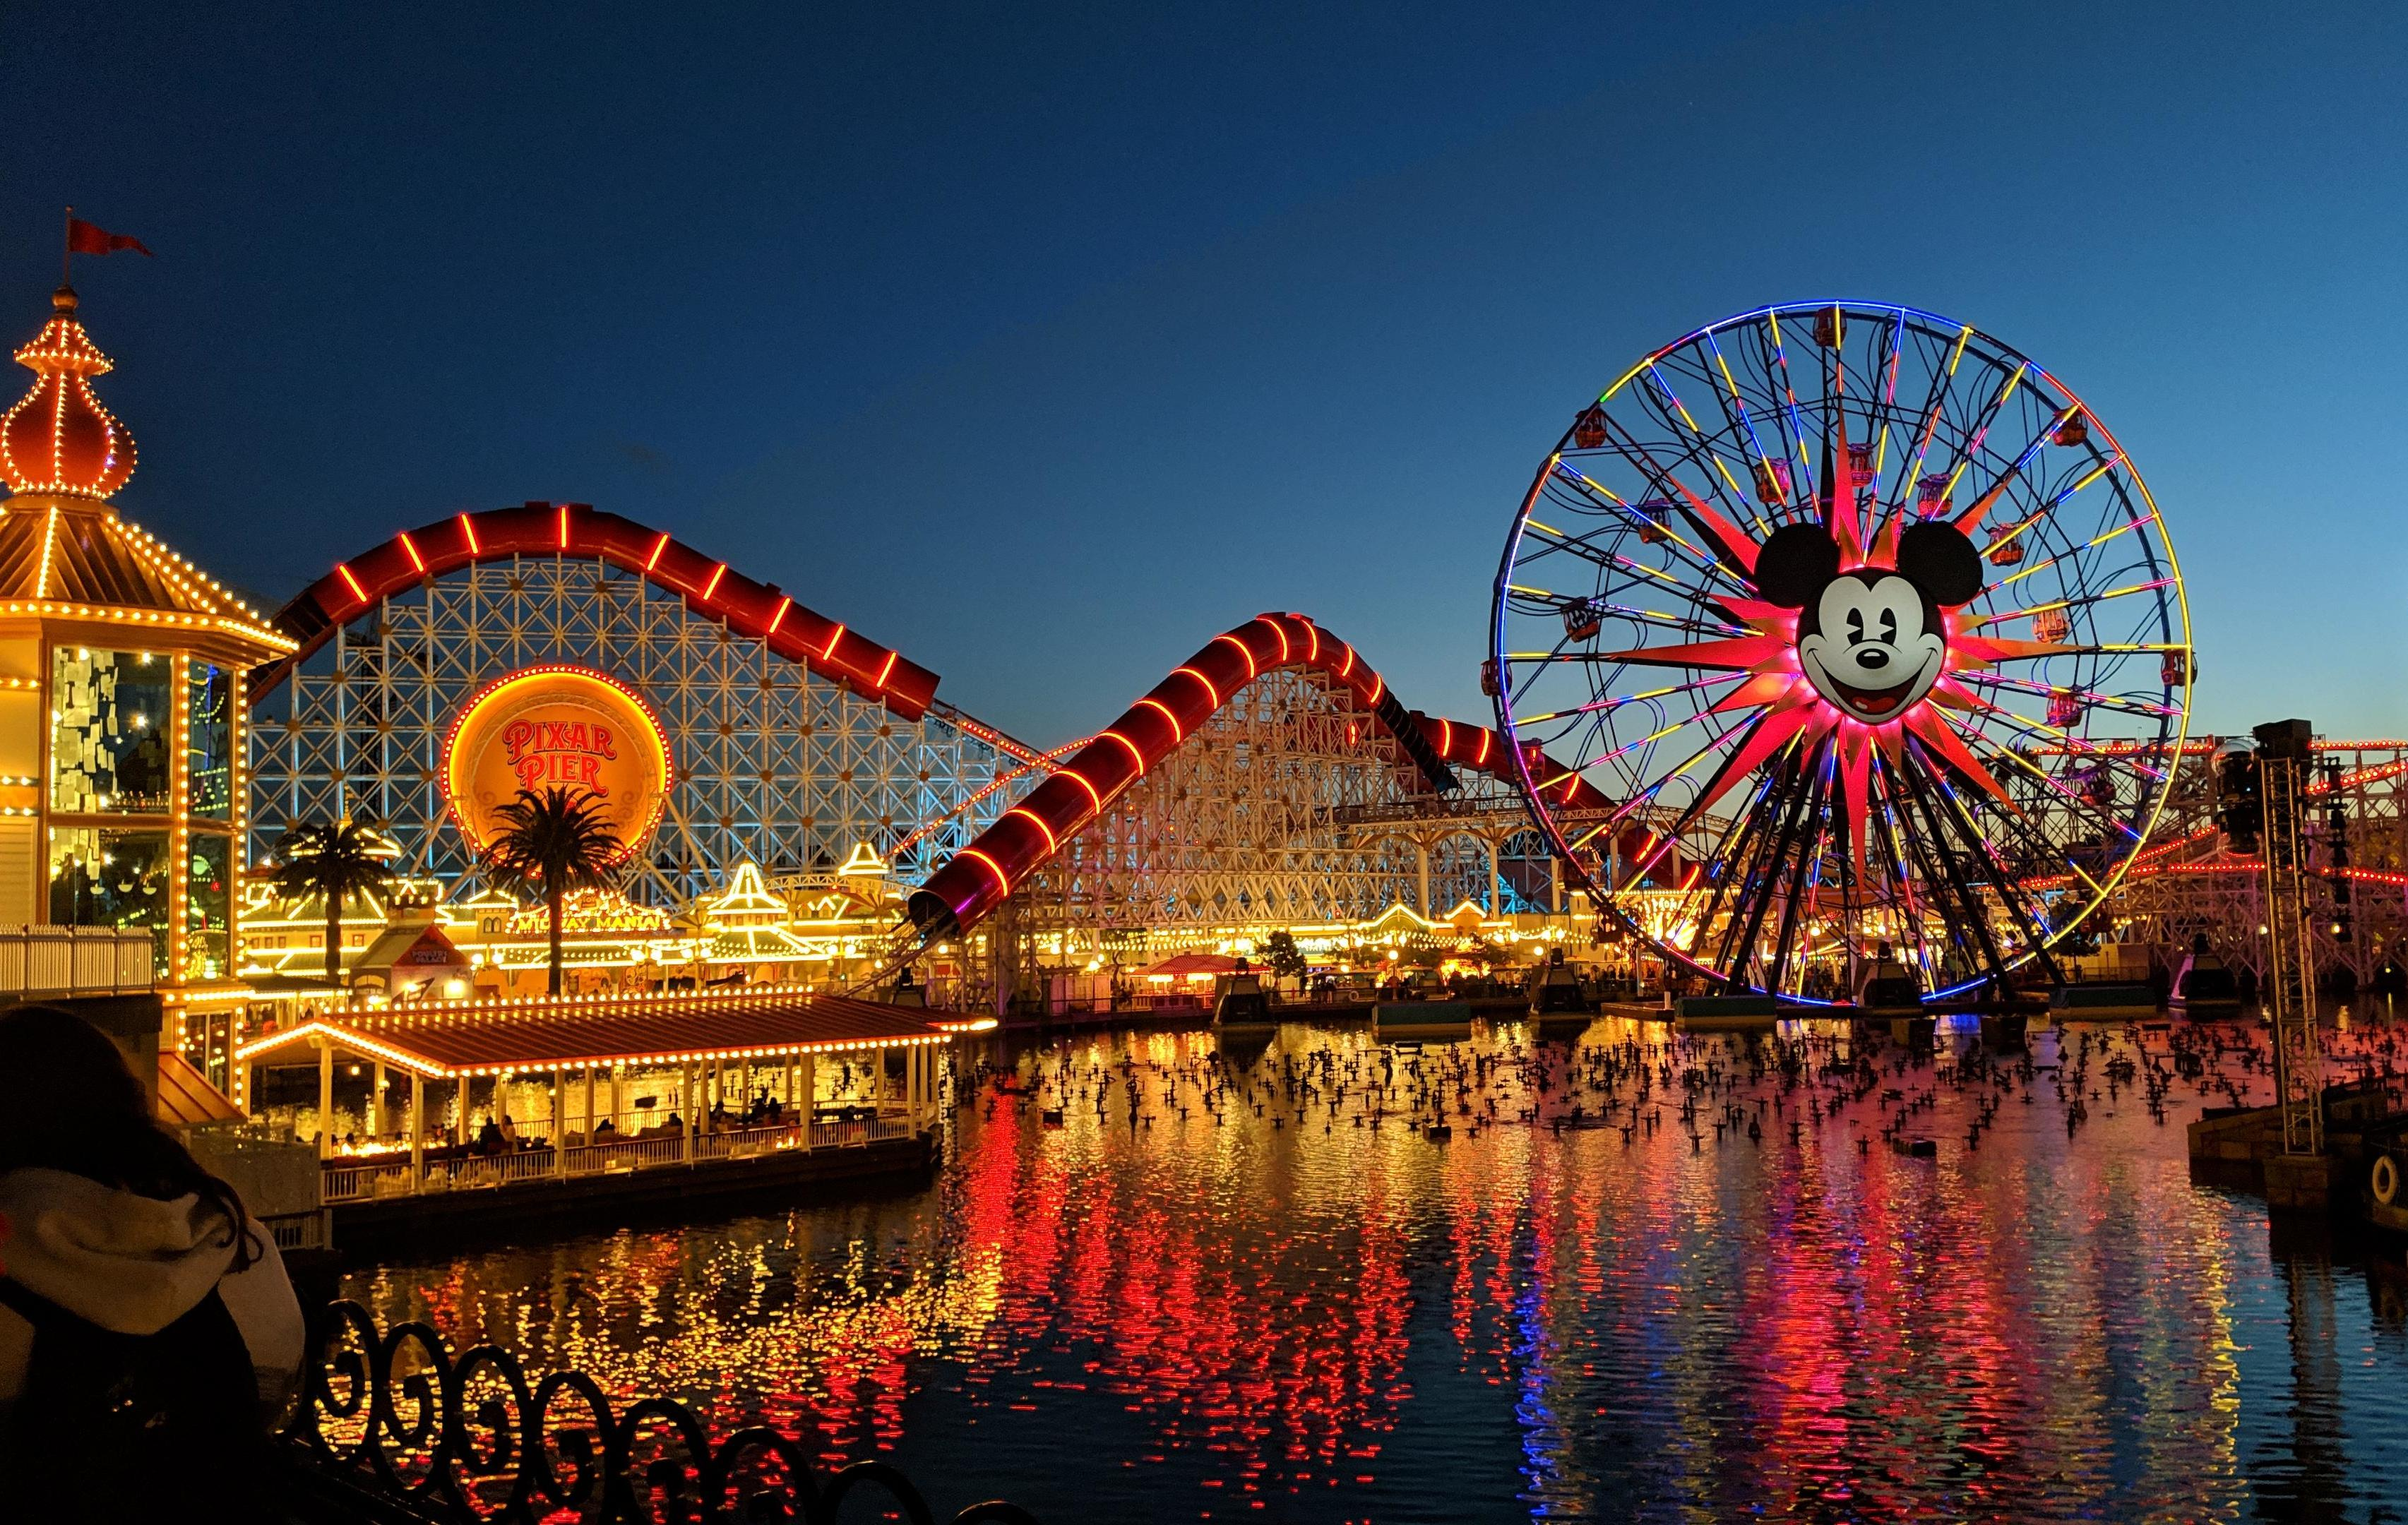 Disneyland launches reopen in California on April 30